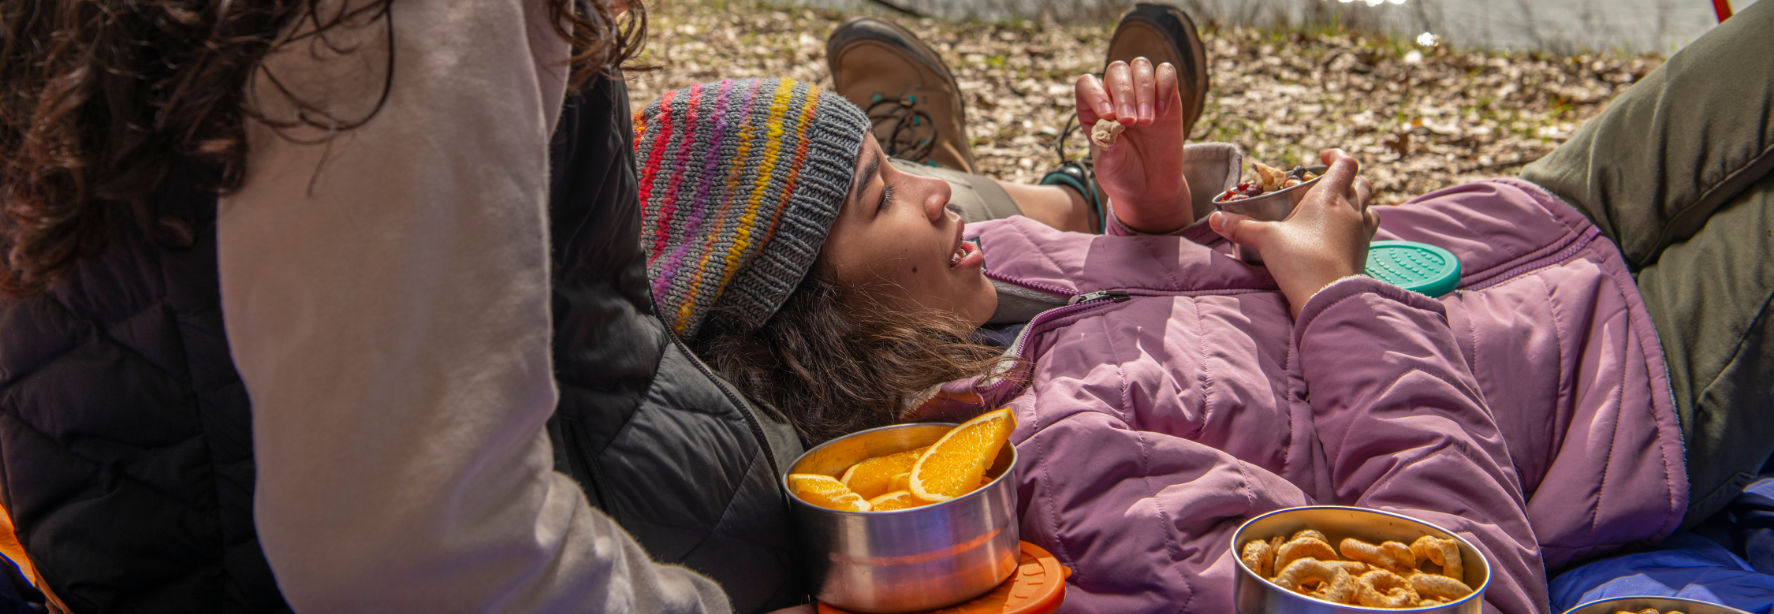 Girl in a beanie and sweater vest laying with a friend by a lake with healthy snacks in ECOlunchbox containers.